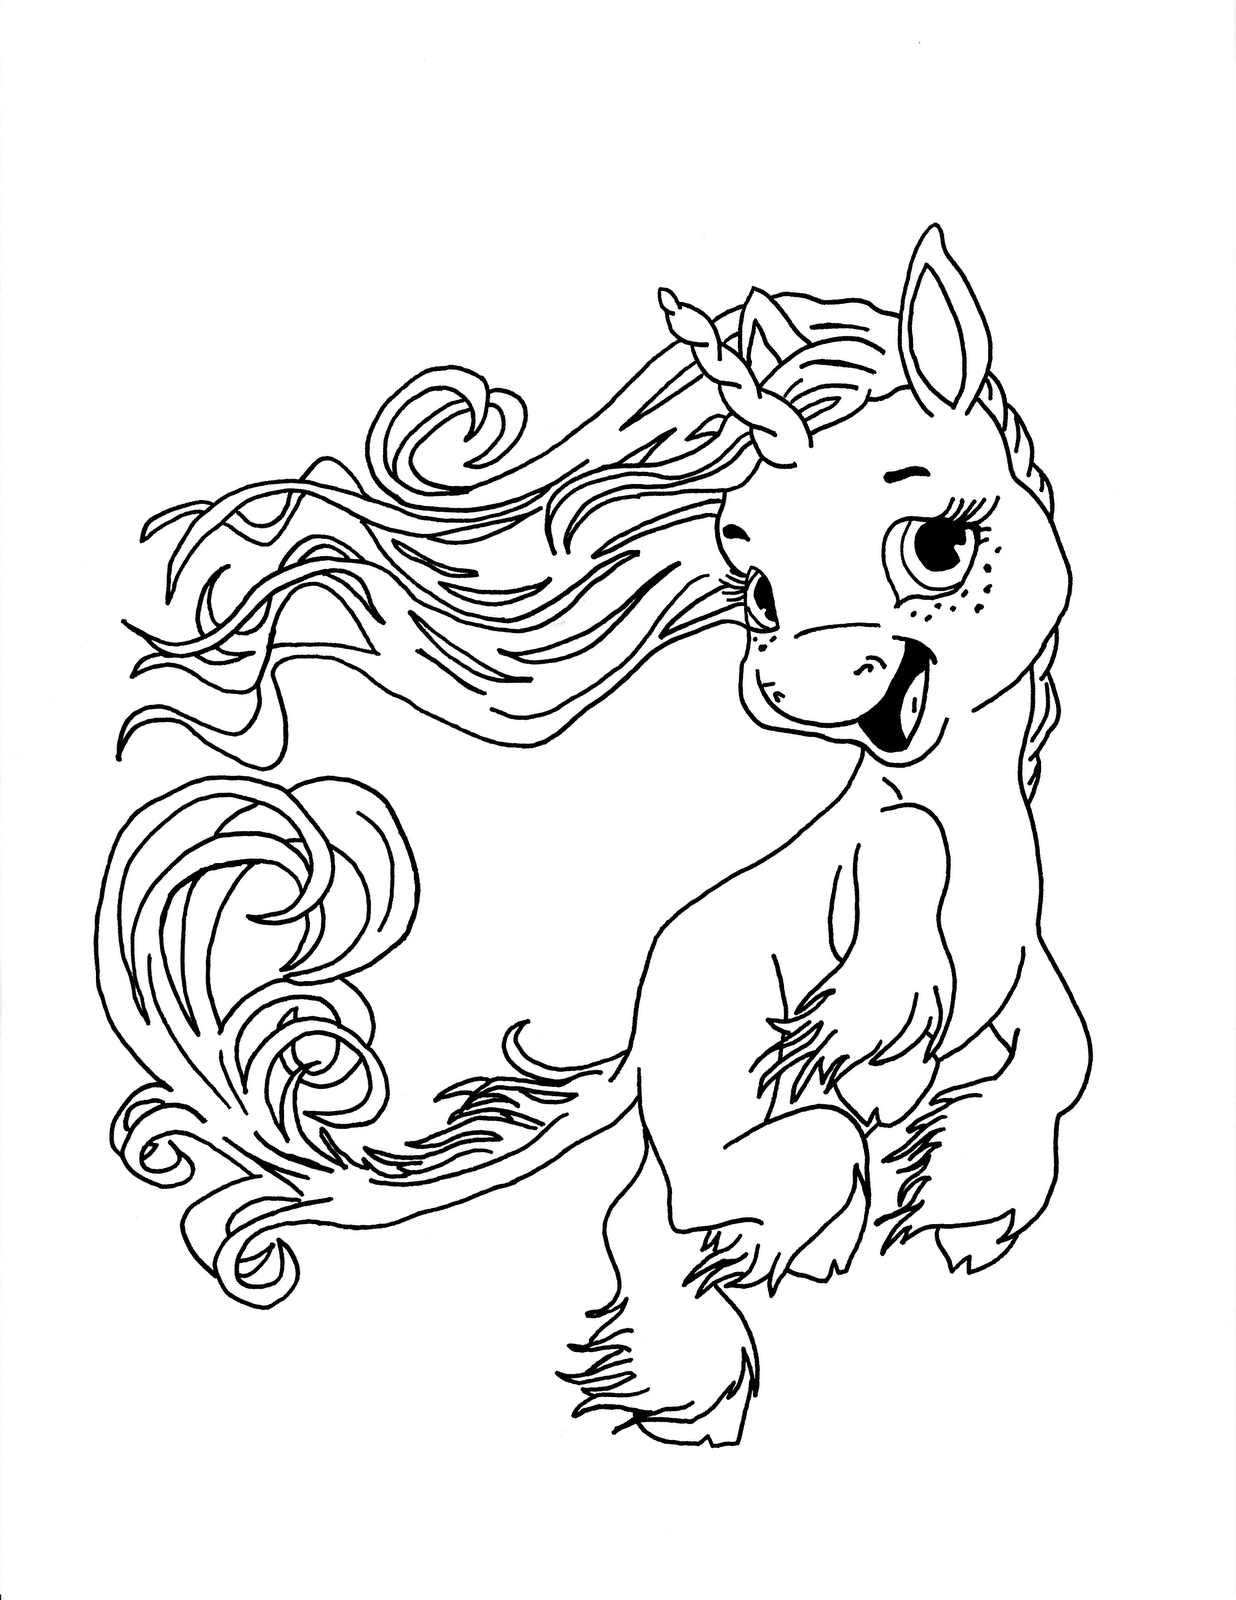 1236x1600 Best Of Detailed Coloring Pages To Print Free Coloring Pages